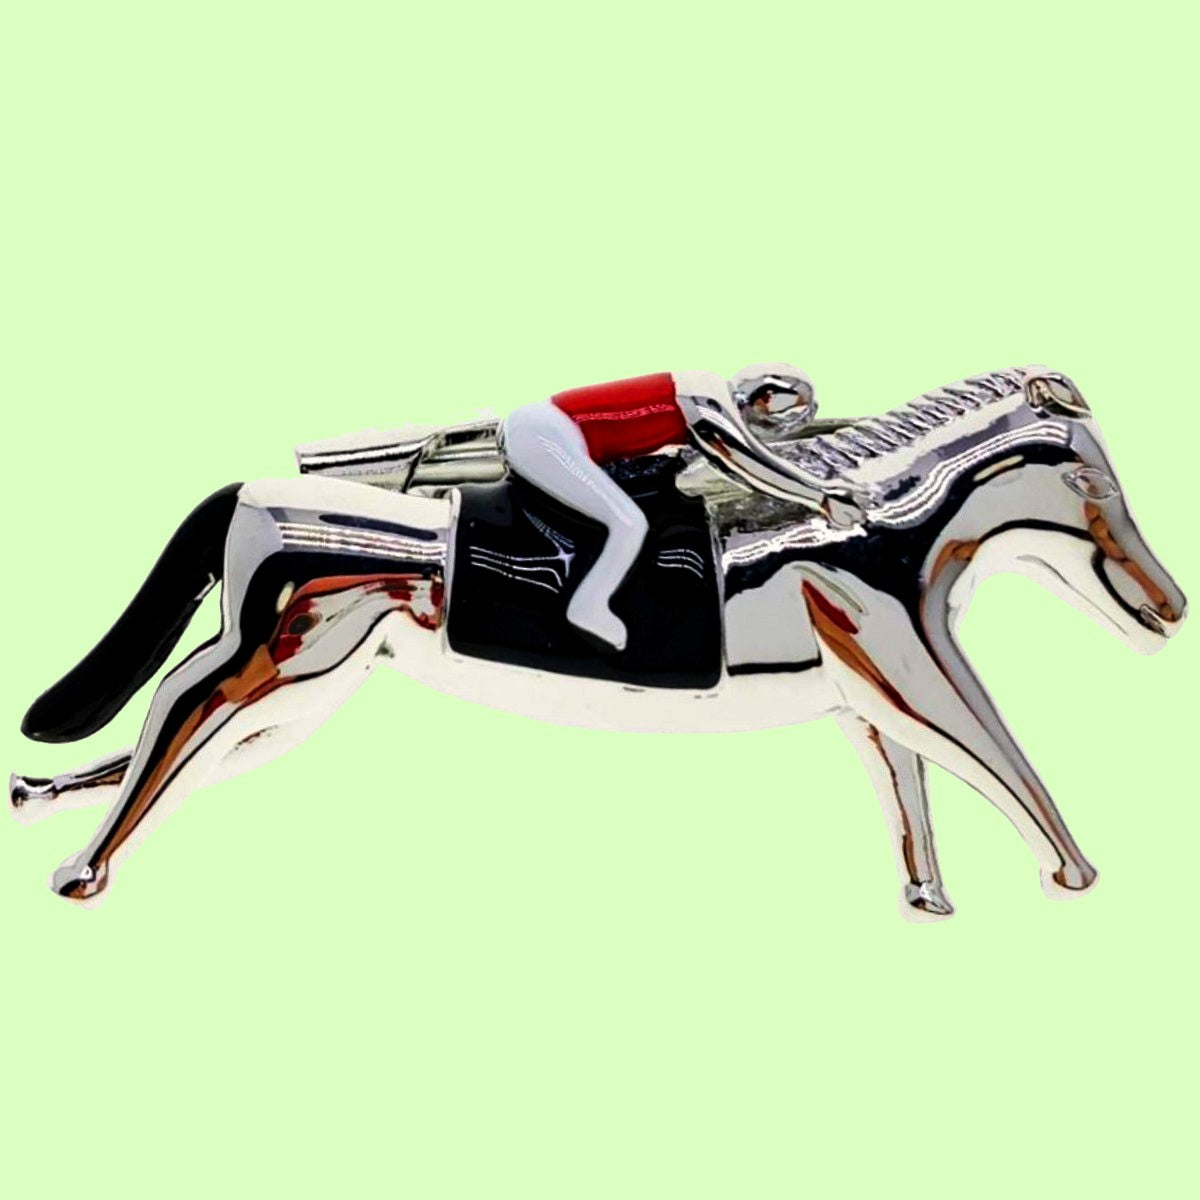 Buy Racing Horse Jockey Designed Enamel Tiebar Winner Bassinandbrown Bassin And Brown